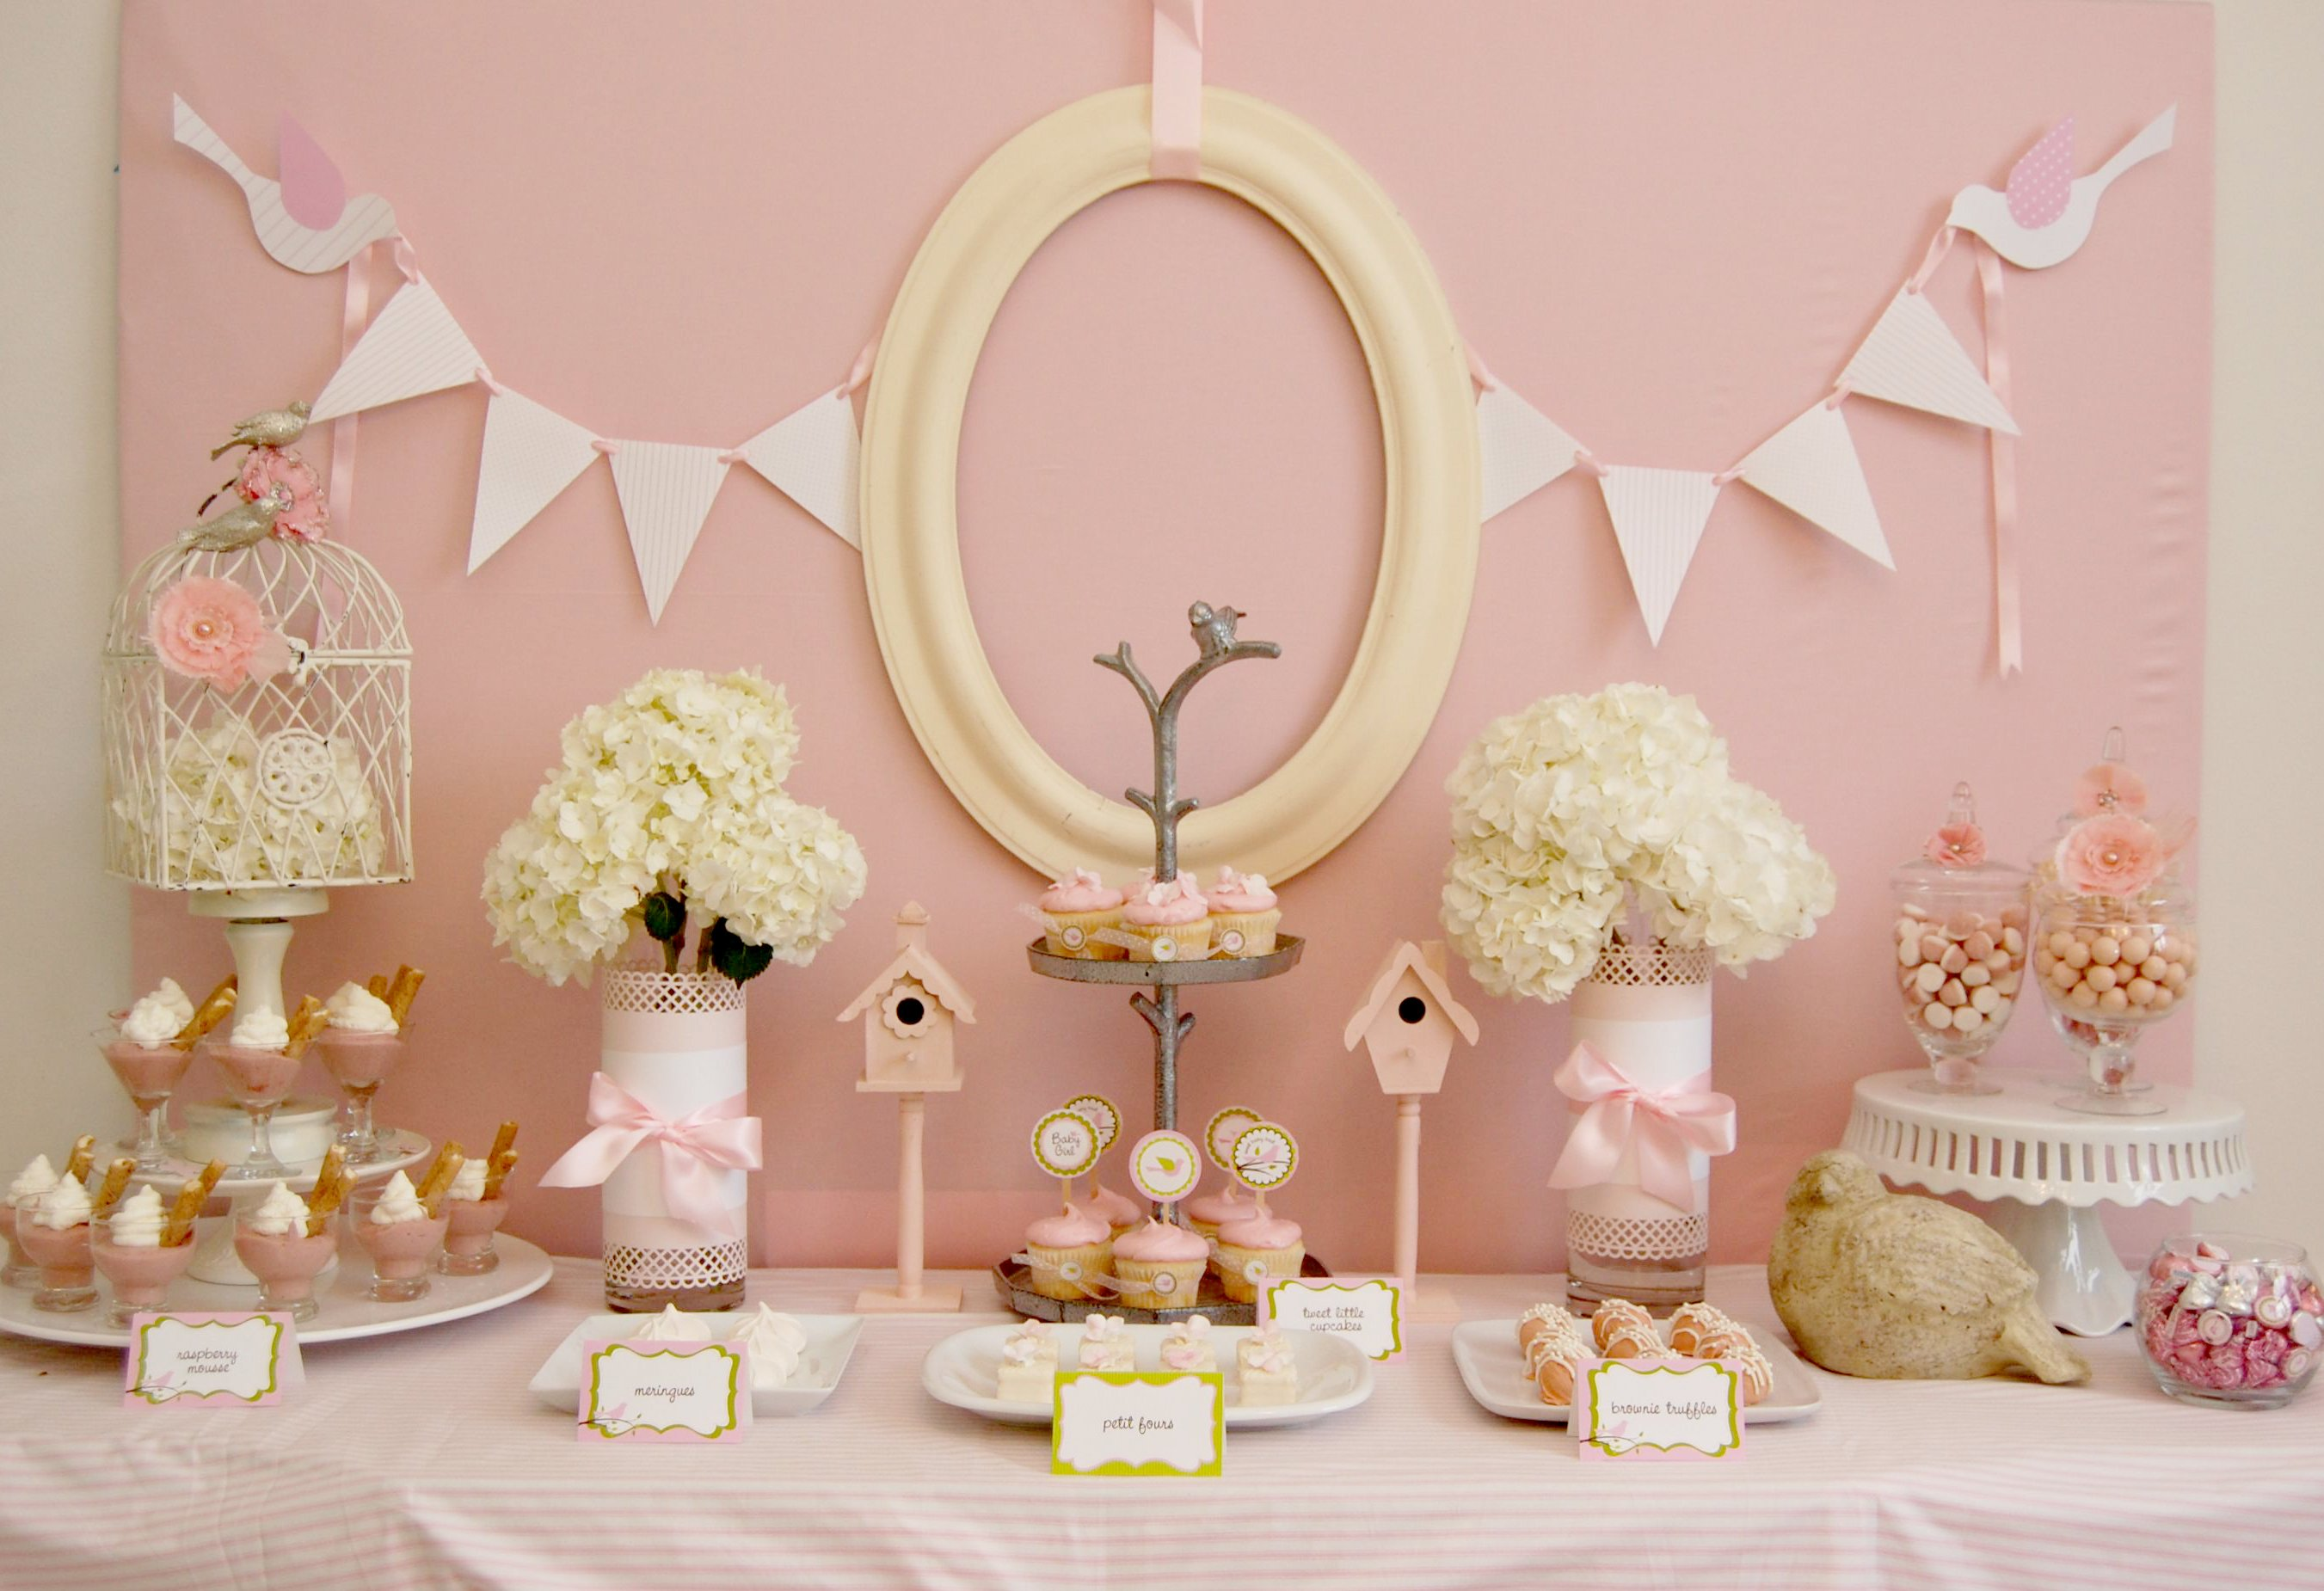 Baby Shower Decoration Ideas 2702 x 1850